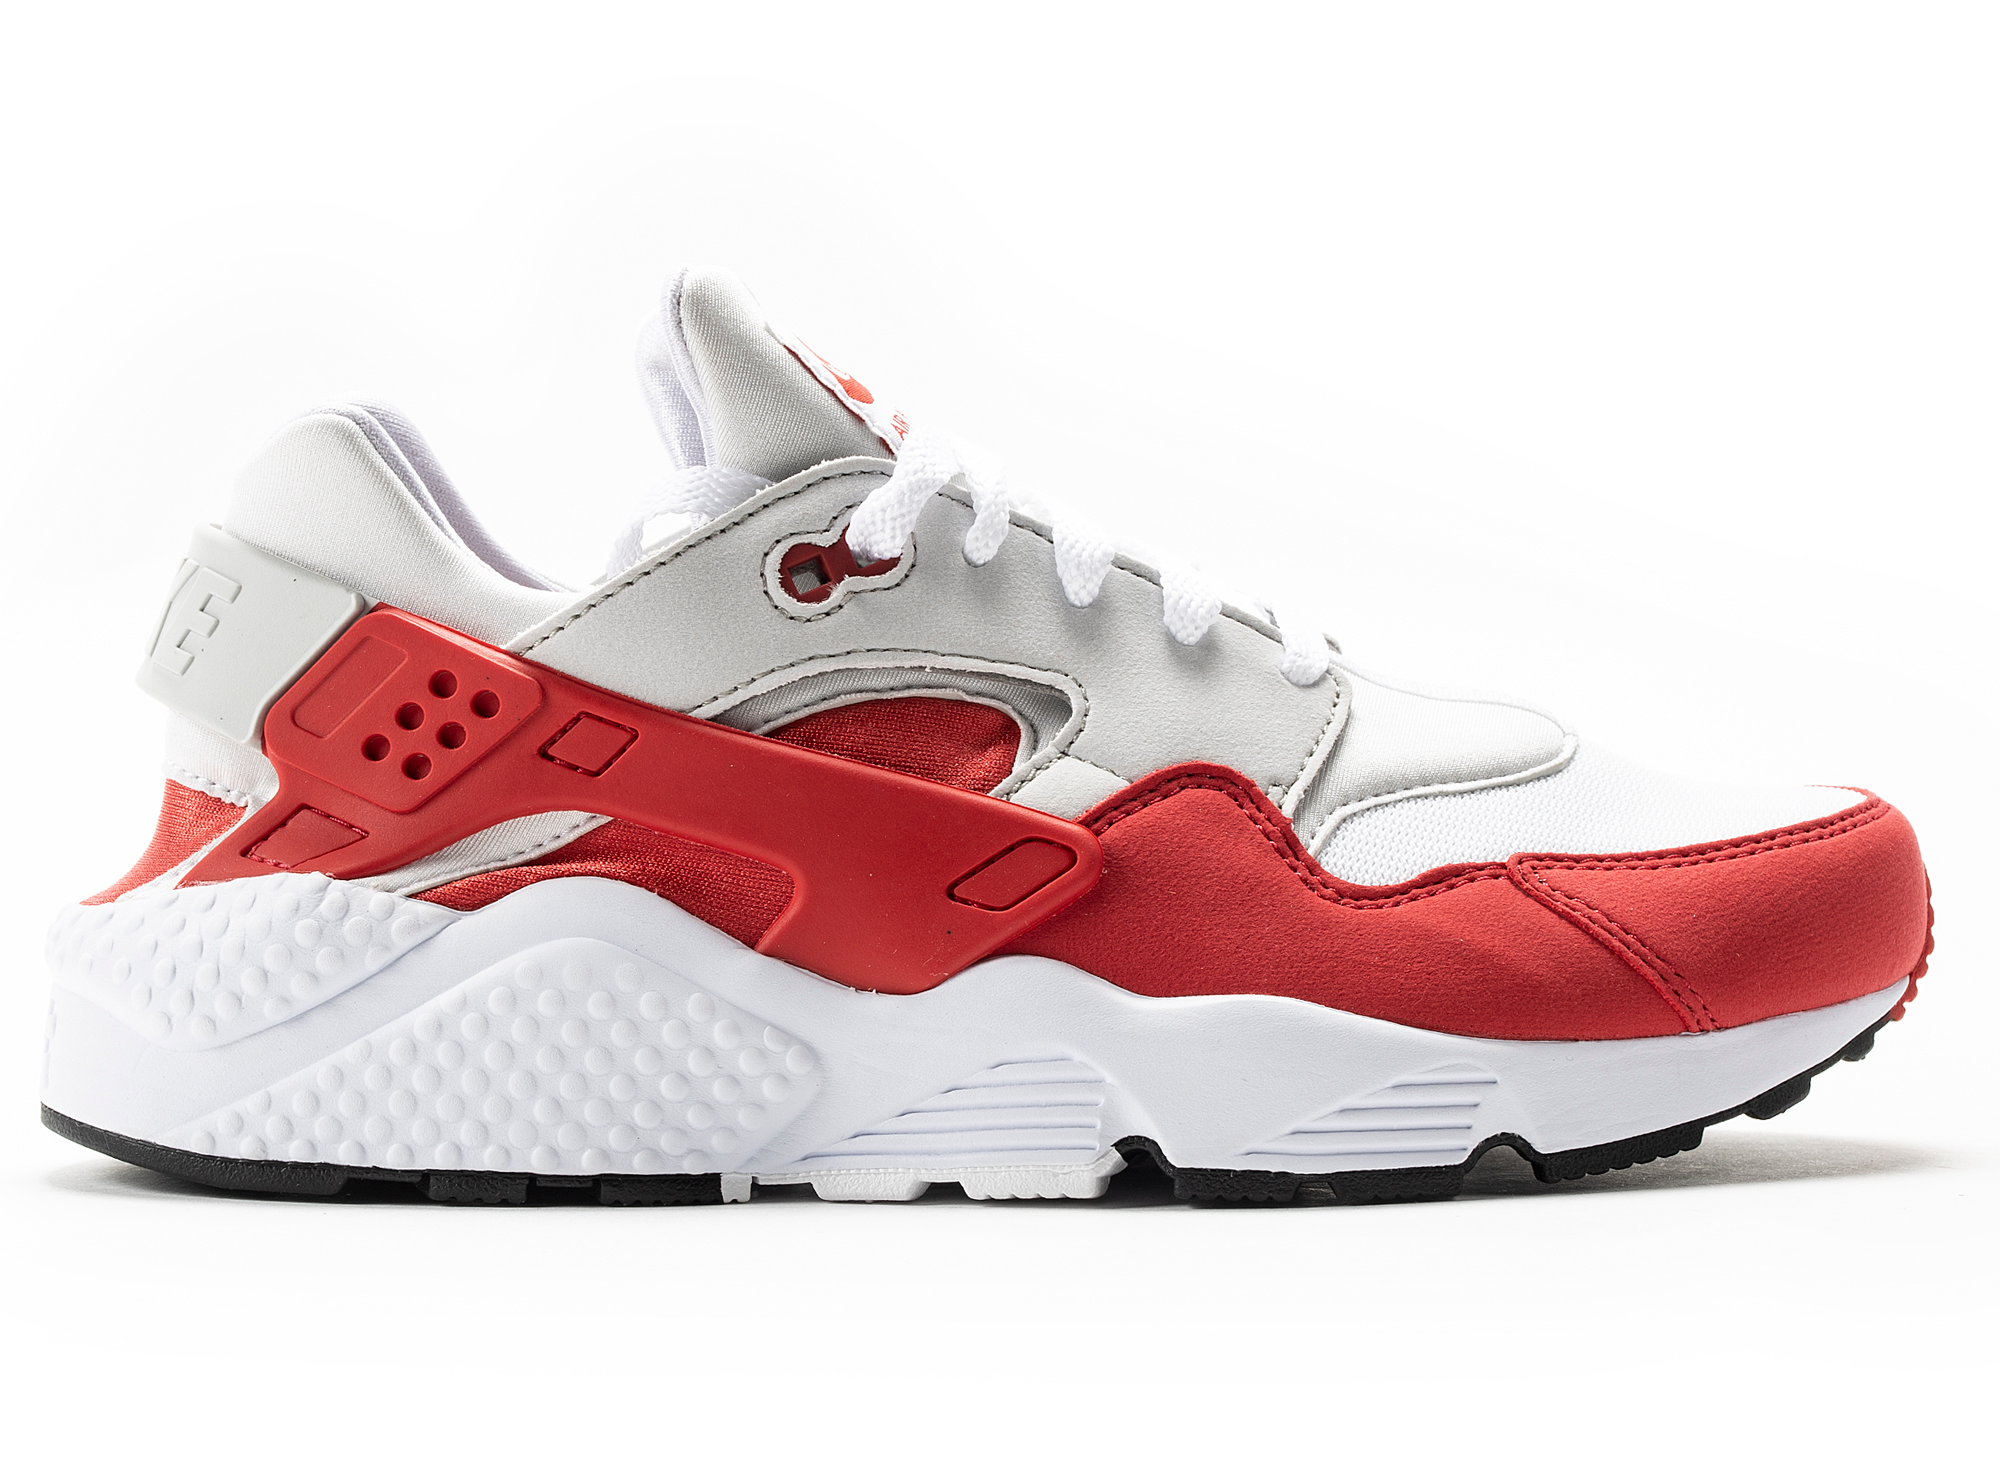 Nike Air Huarache Run DNA CH. 1 XLD